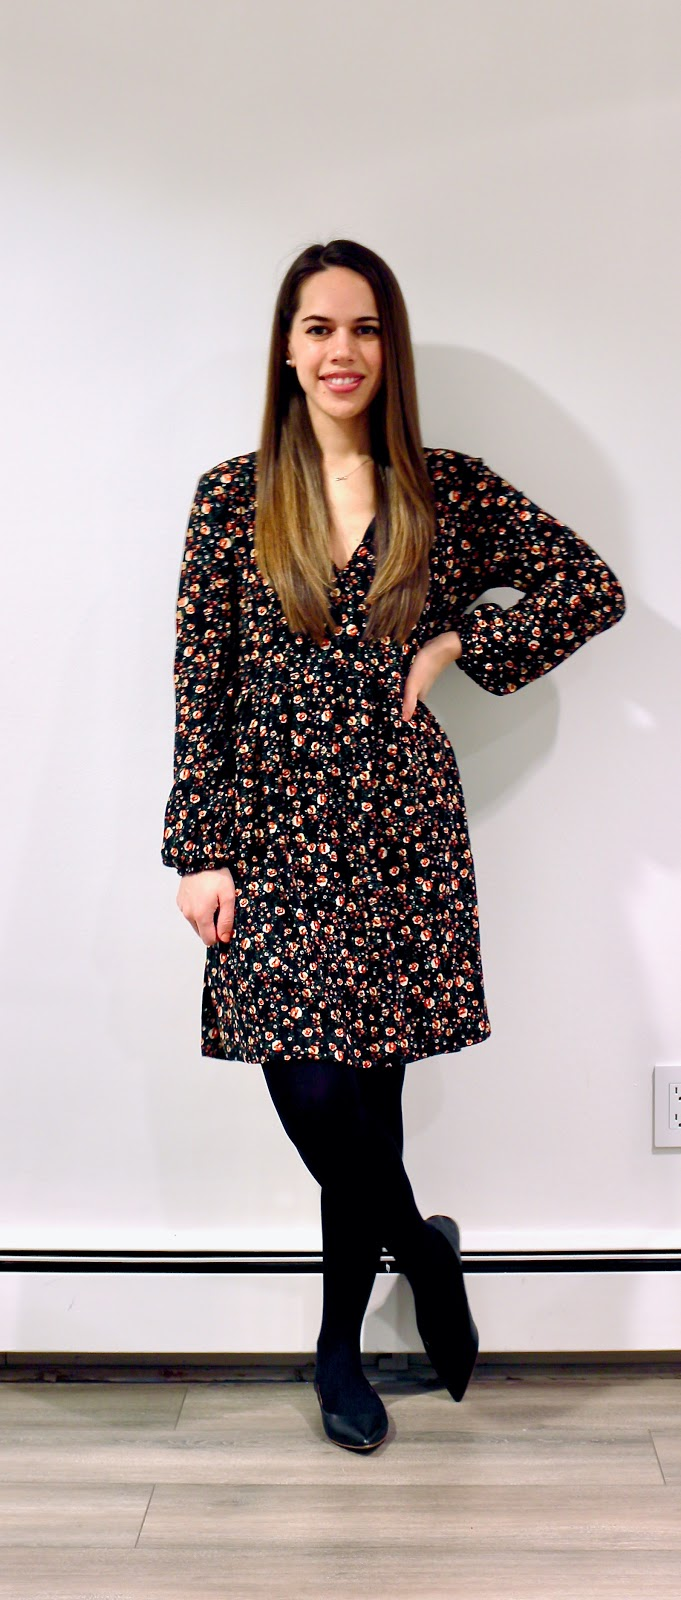 Jules in Flats - Zara Floral Mini Dress (Business Casual Winter Workwear on a Budget)